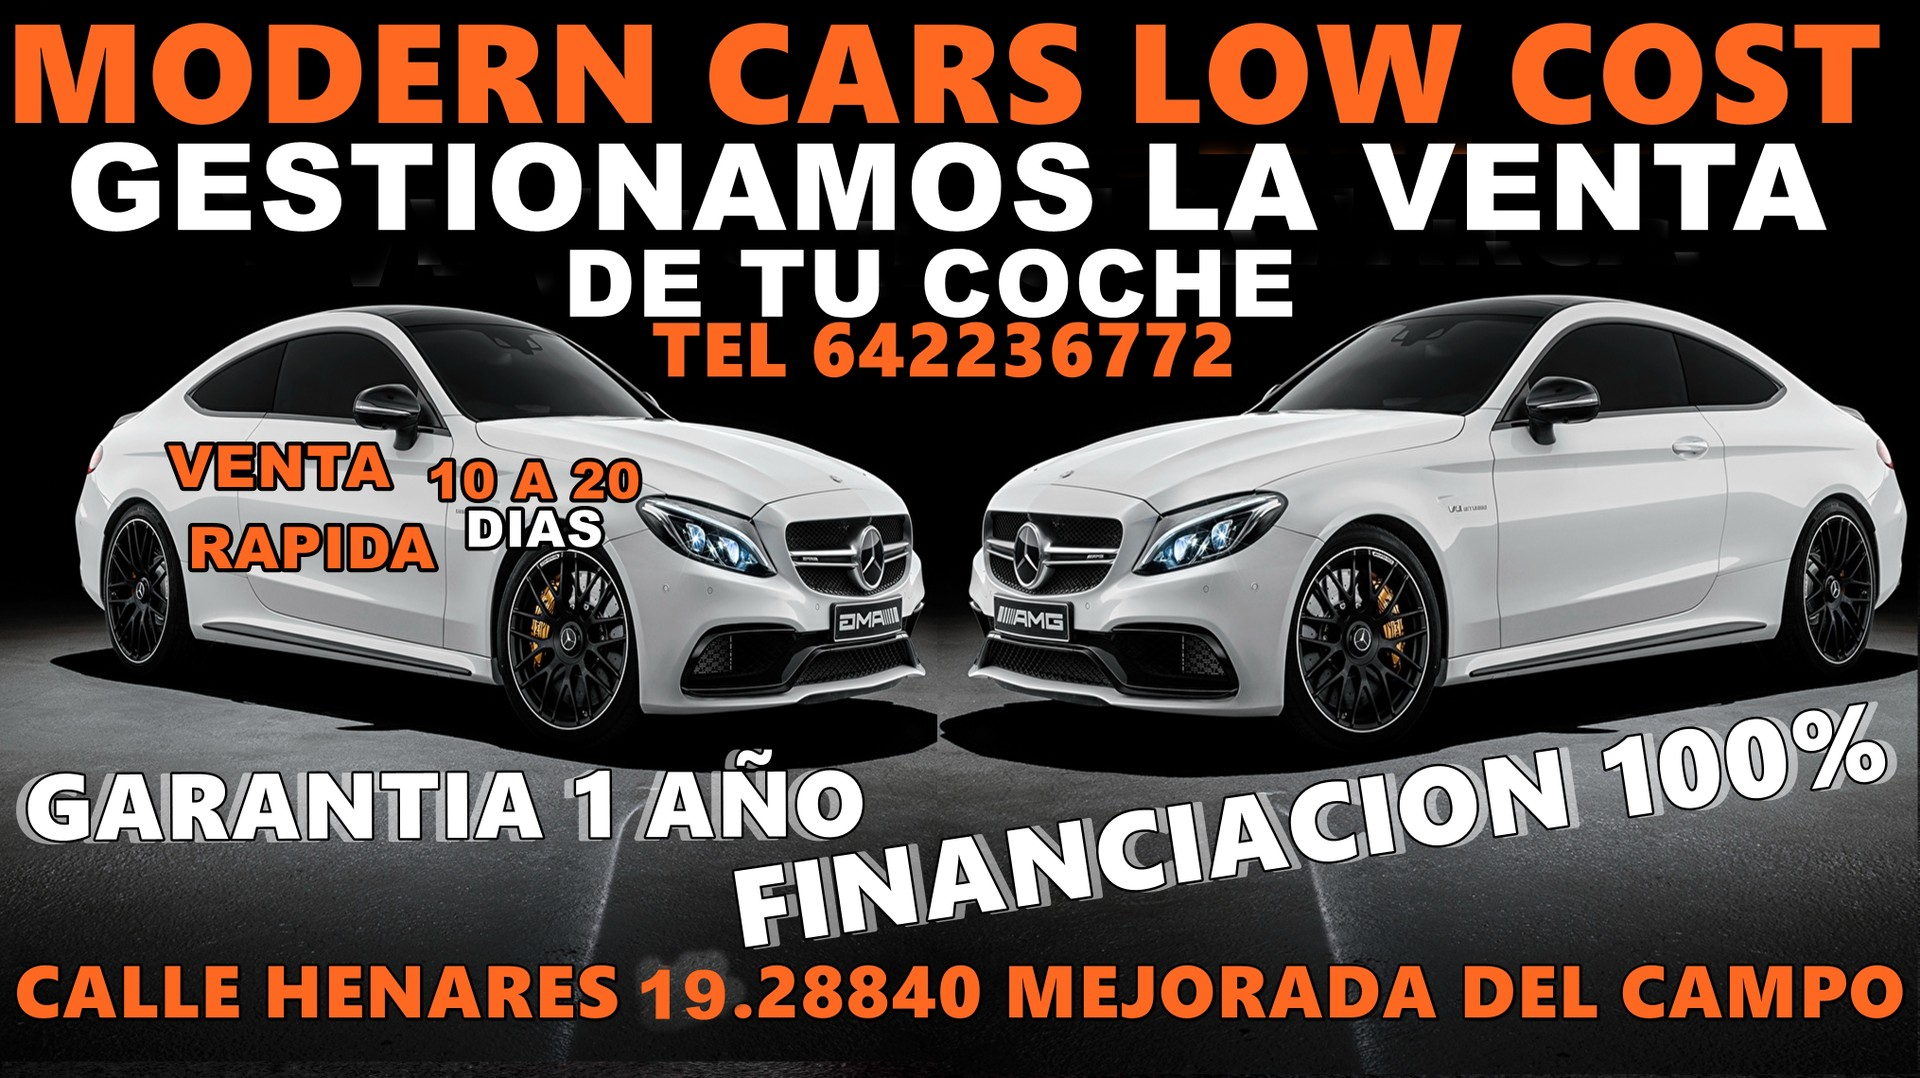 Logo MODERN CARS LOW COST